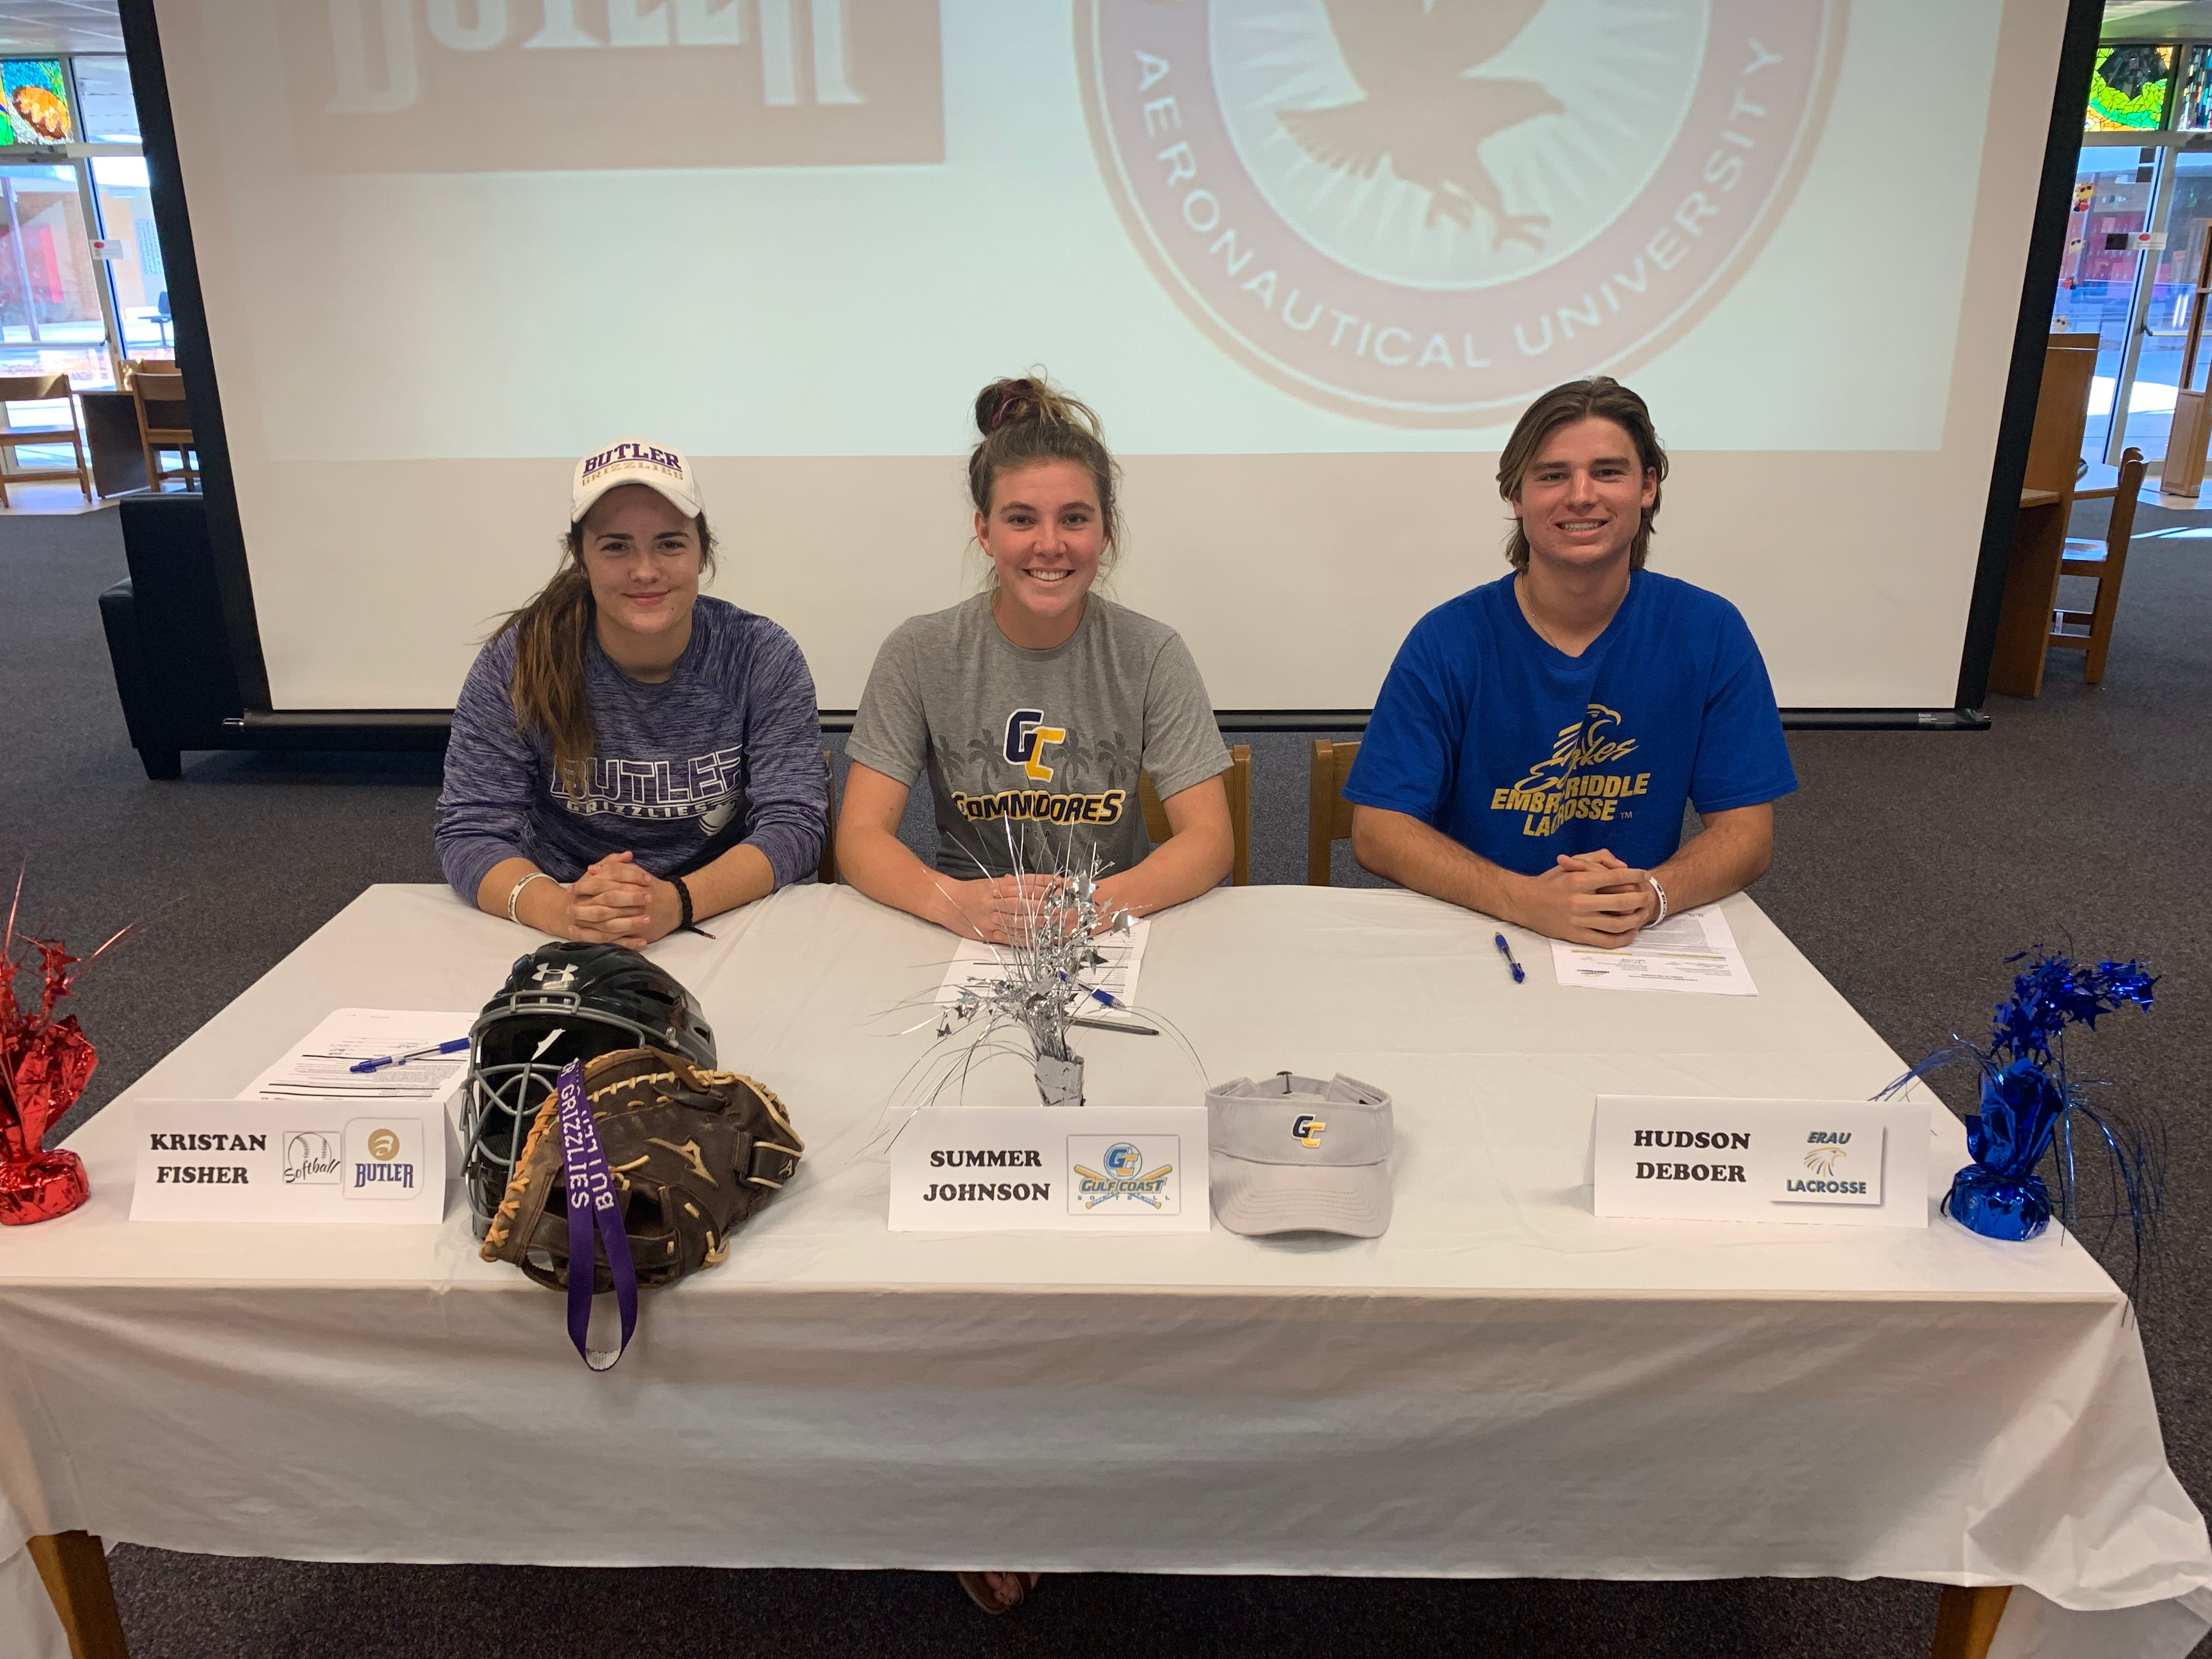 Signing day at Cocoa Beach